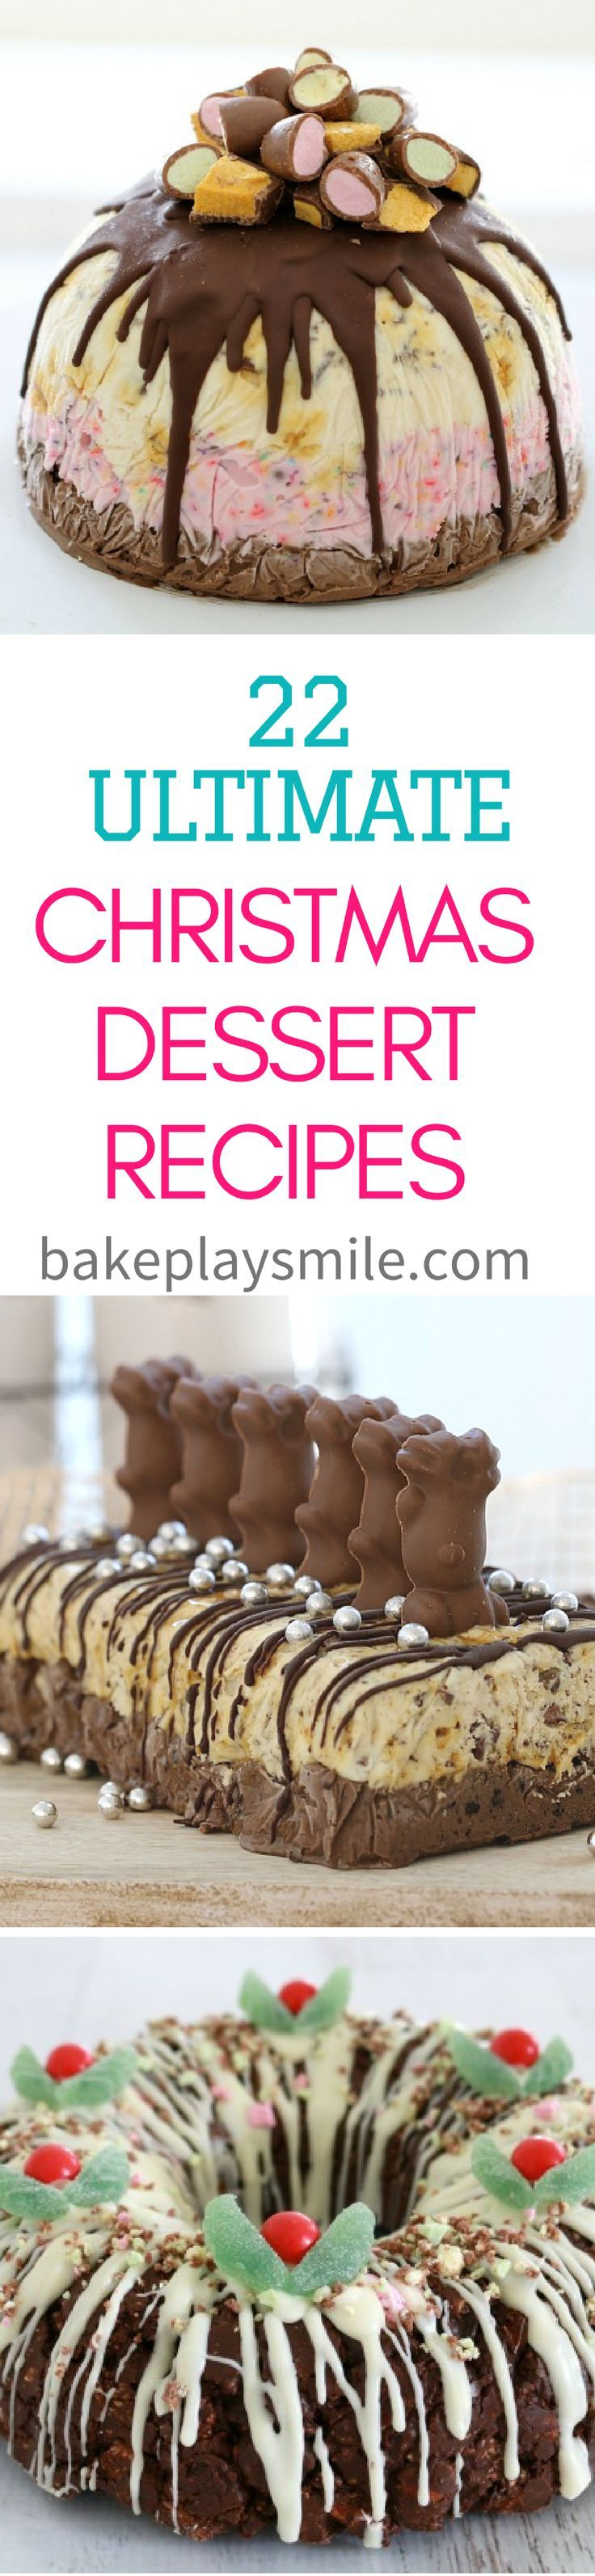 A collection of 22 of the ultimate Christmas dessert recipes.. these really are totally drool worthy! With everything from cheesecakes to chocolate ripple cakes, ice cream cakes to rocky road wreaths�� there really is something for everyone! #christmas #d